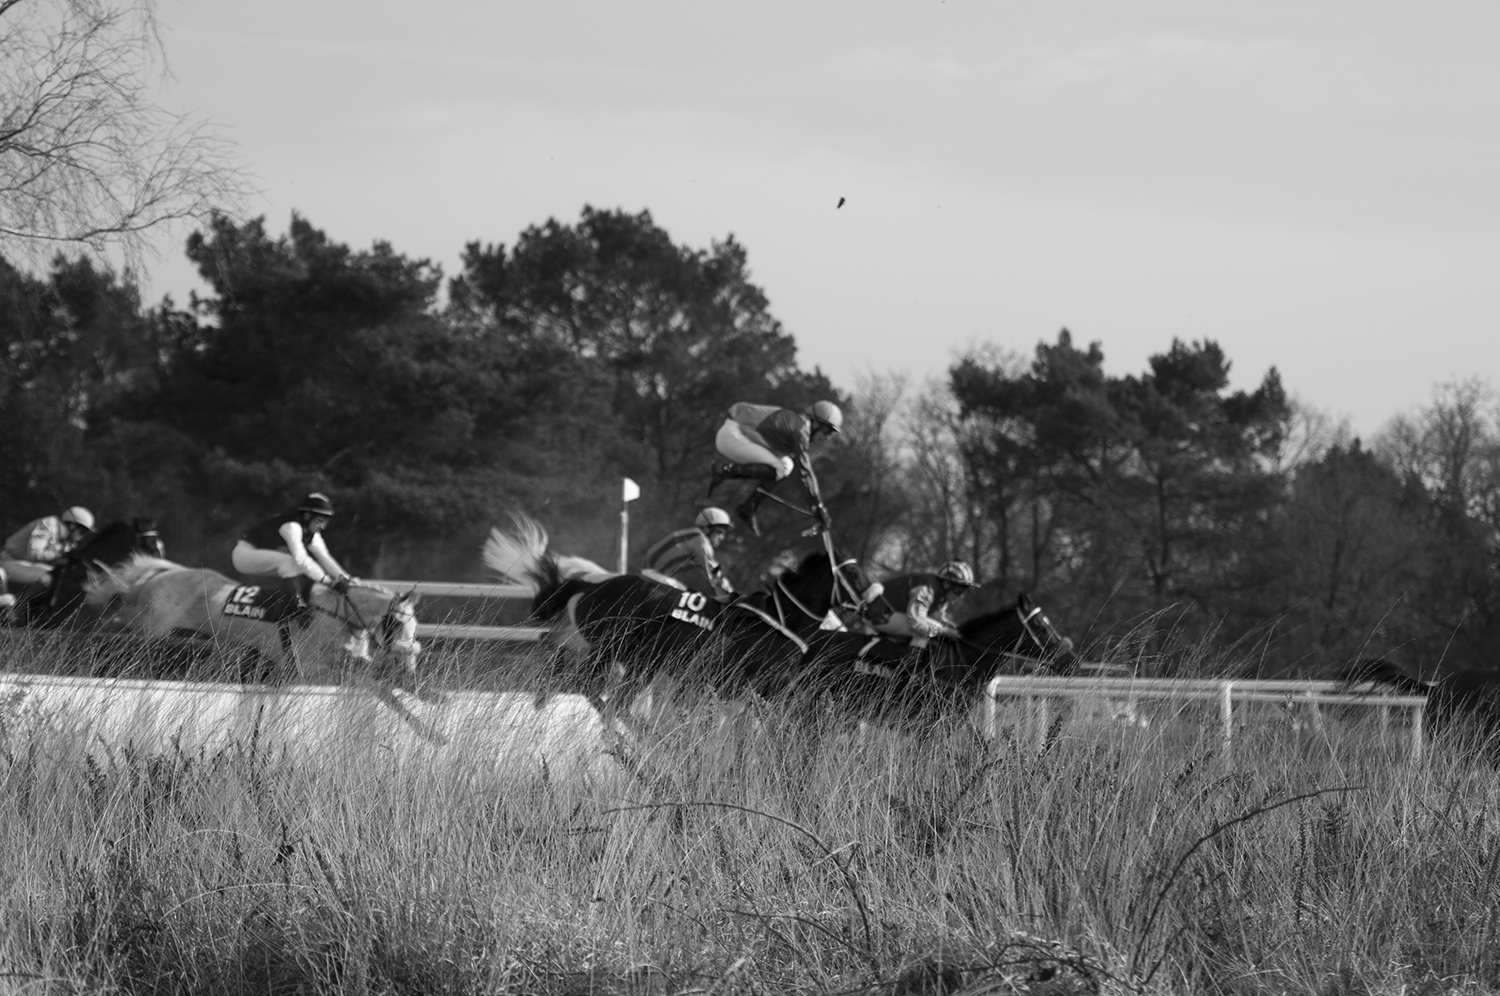 Jokey flying mid-air after failing on one of the jumps during a steeplechasing race.